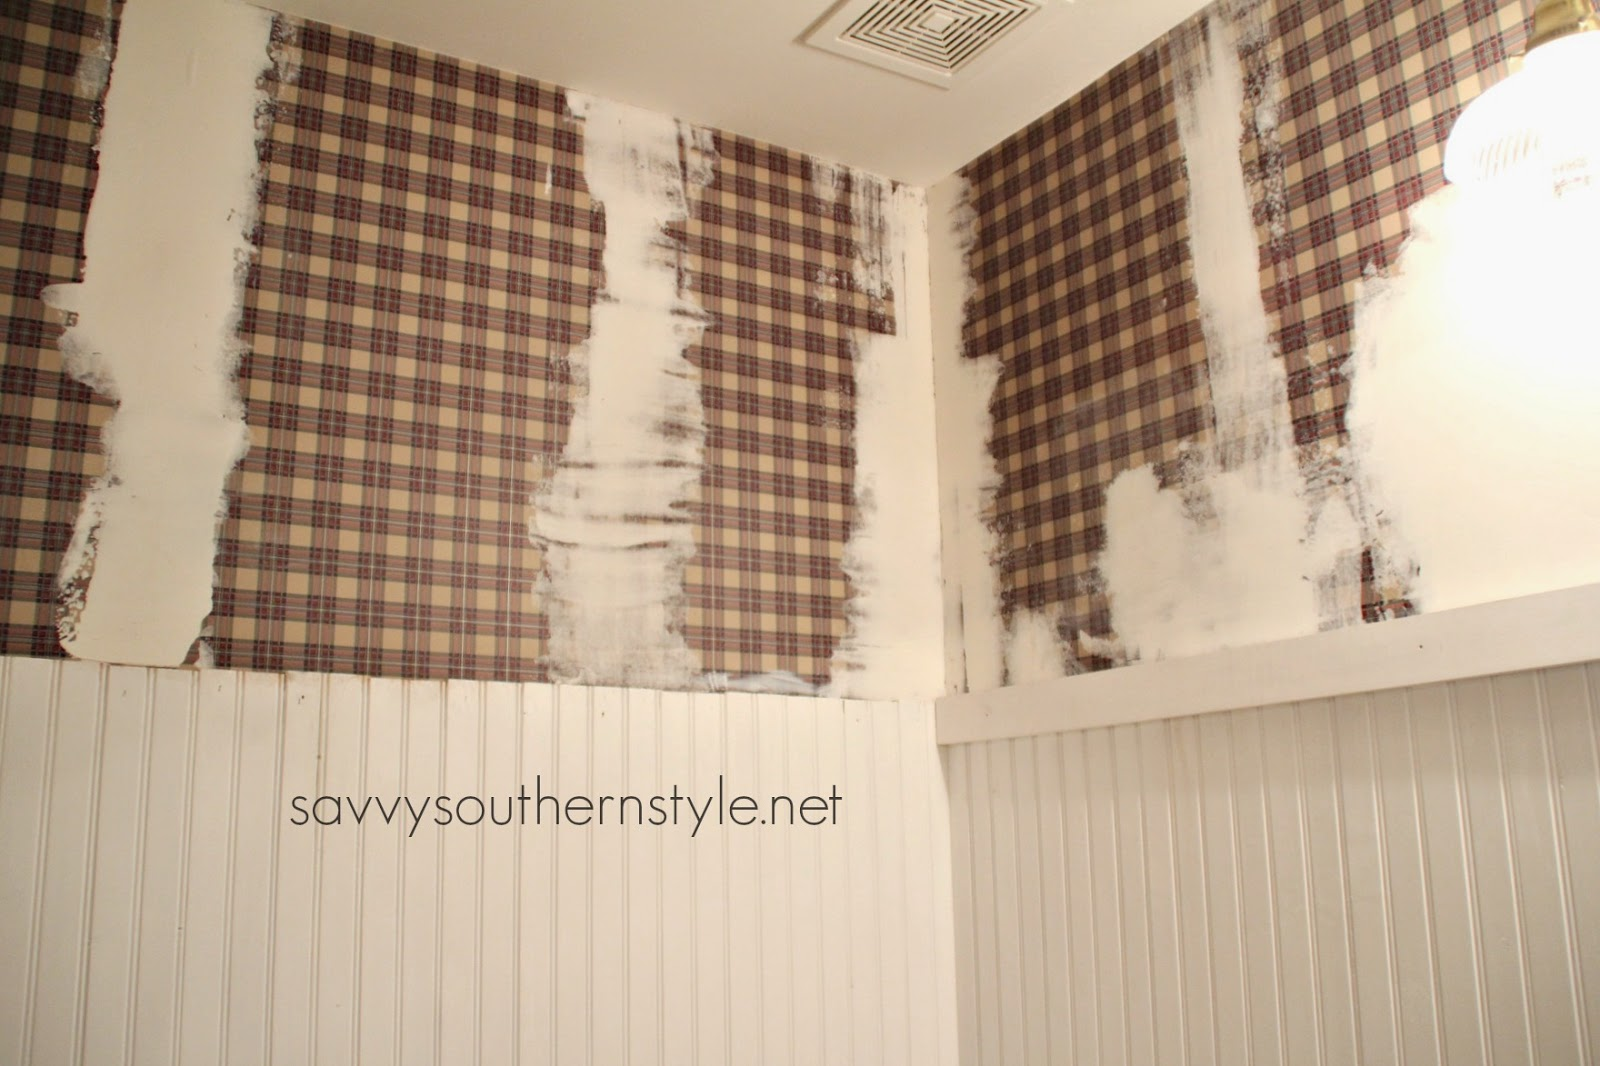 Savvy southern style how to paint over wallpaper for Where can i get wallpaper for my room